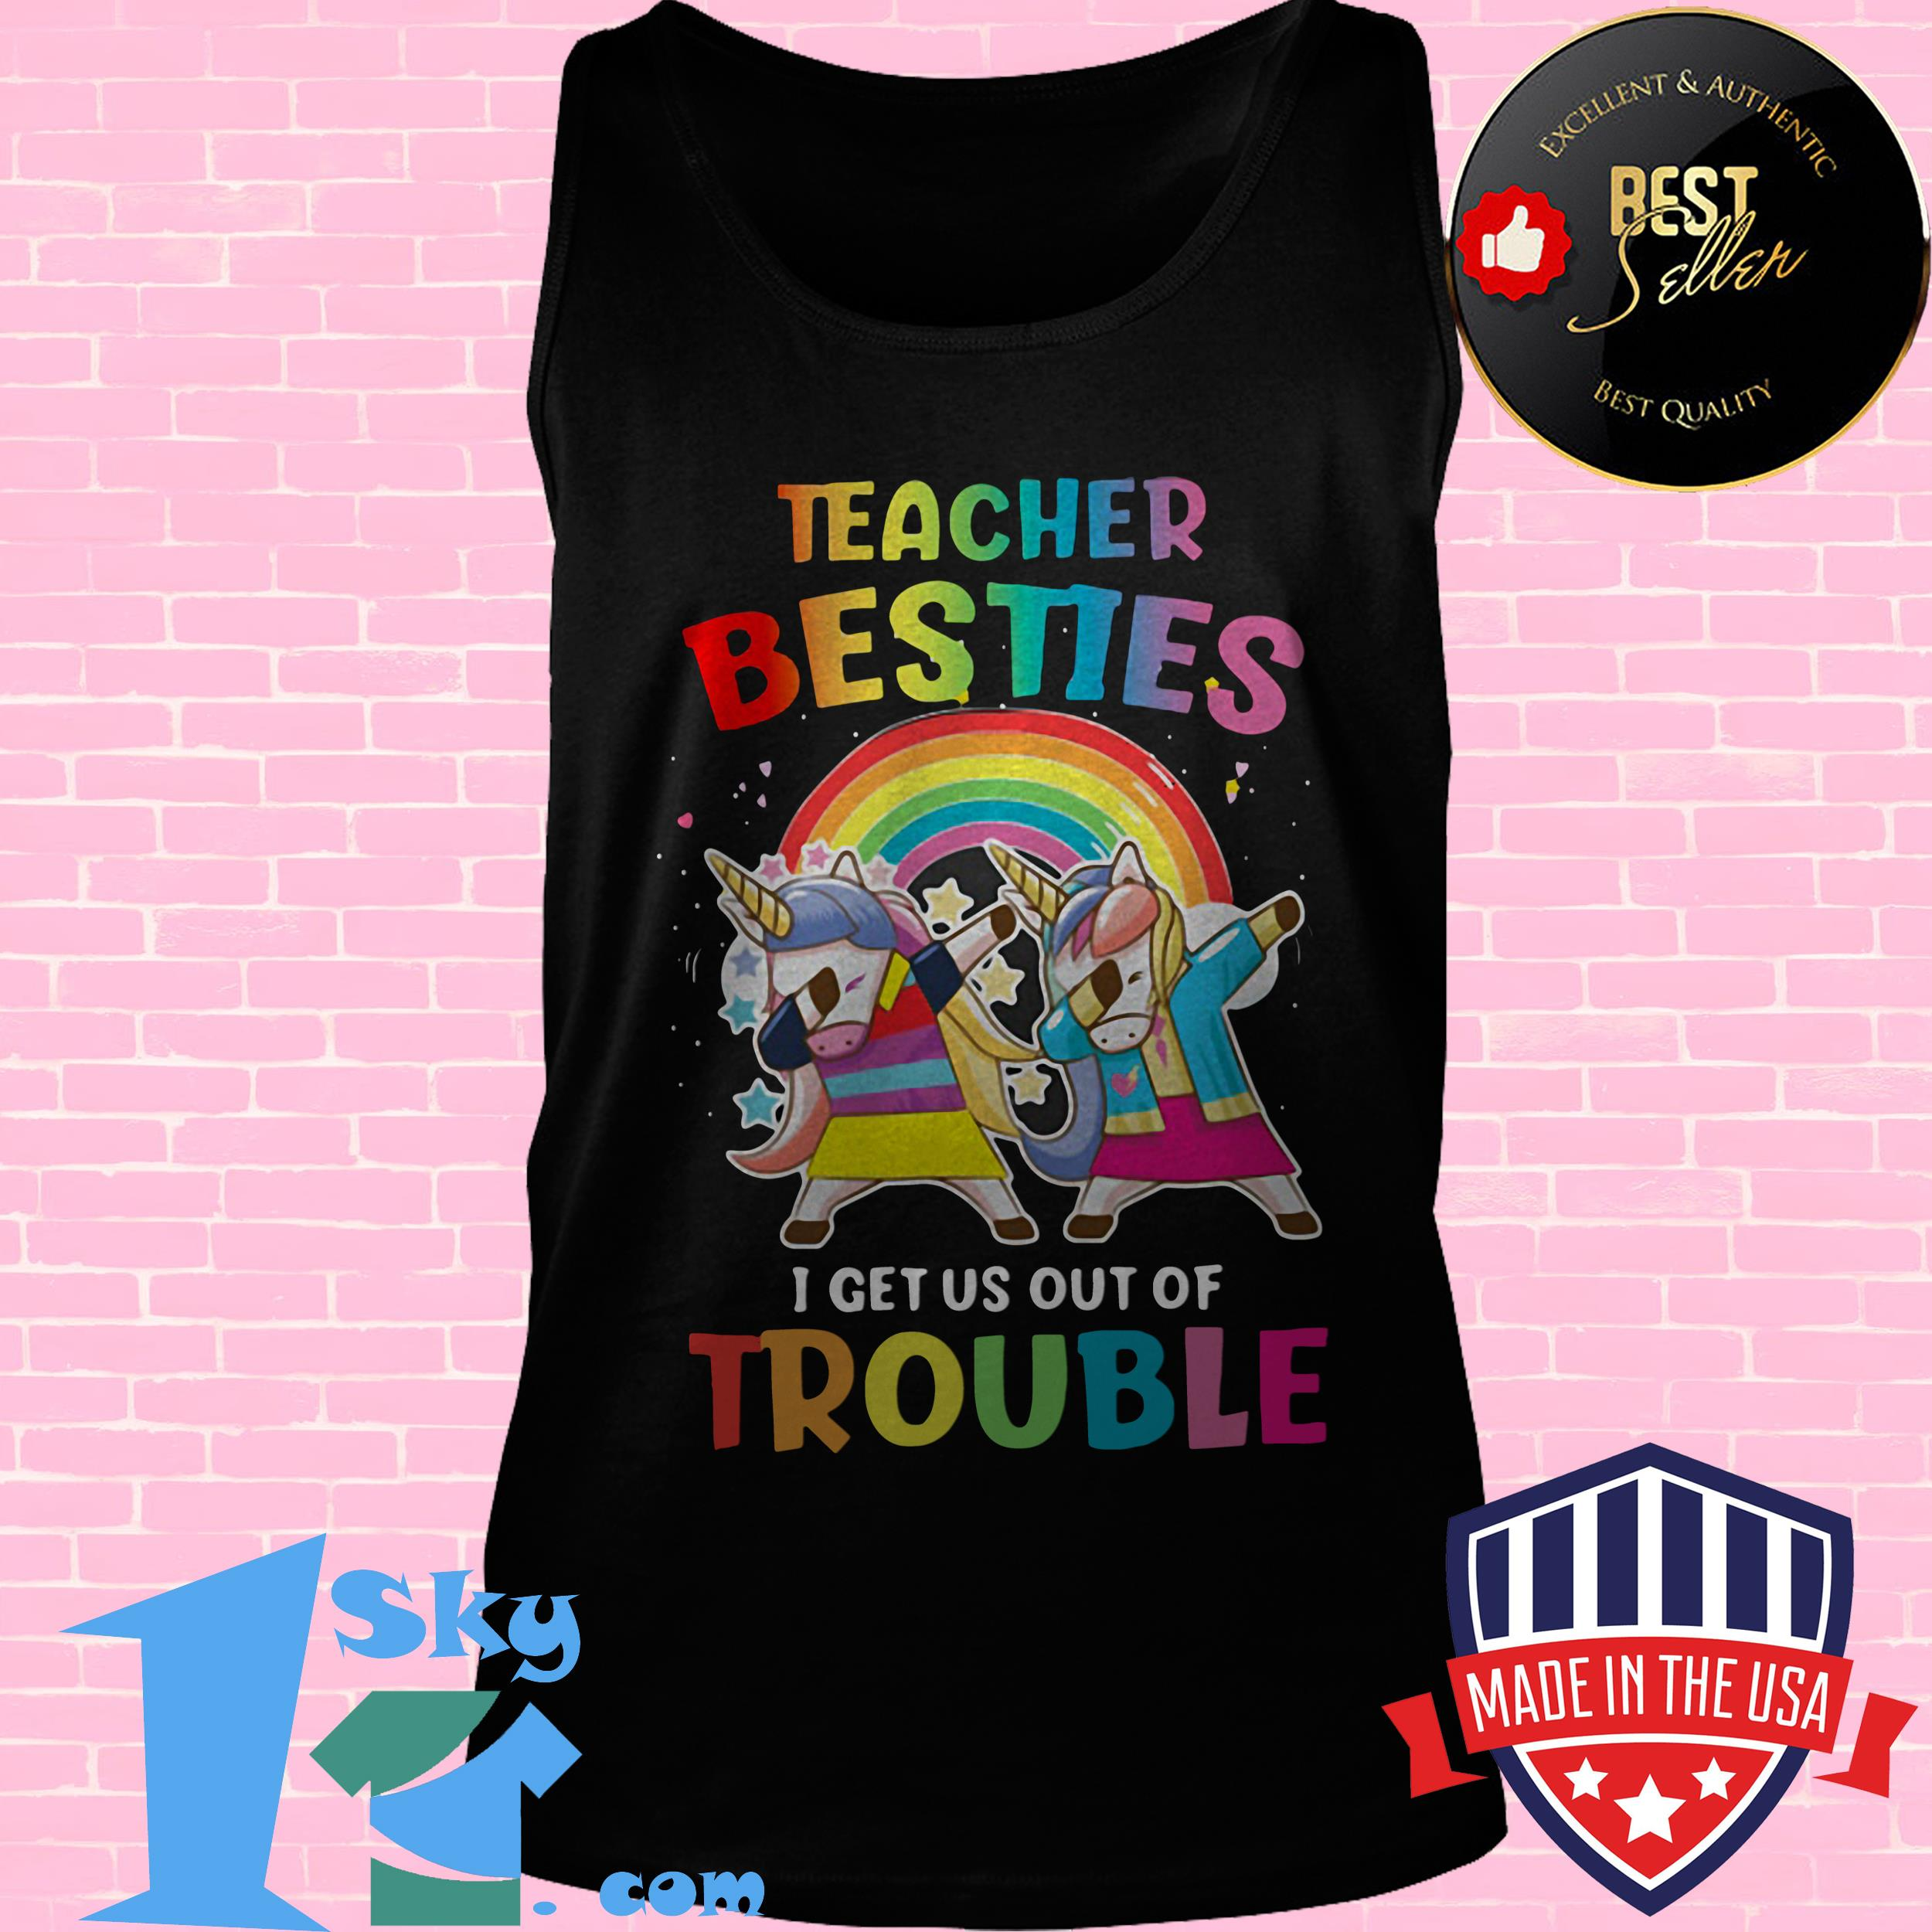 lgbt teacher besties i get us out of trouble unicorn tank top - LGBT Teacher Besties I Get Us Out Of Trouble Unicorn shirt